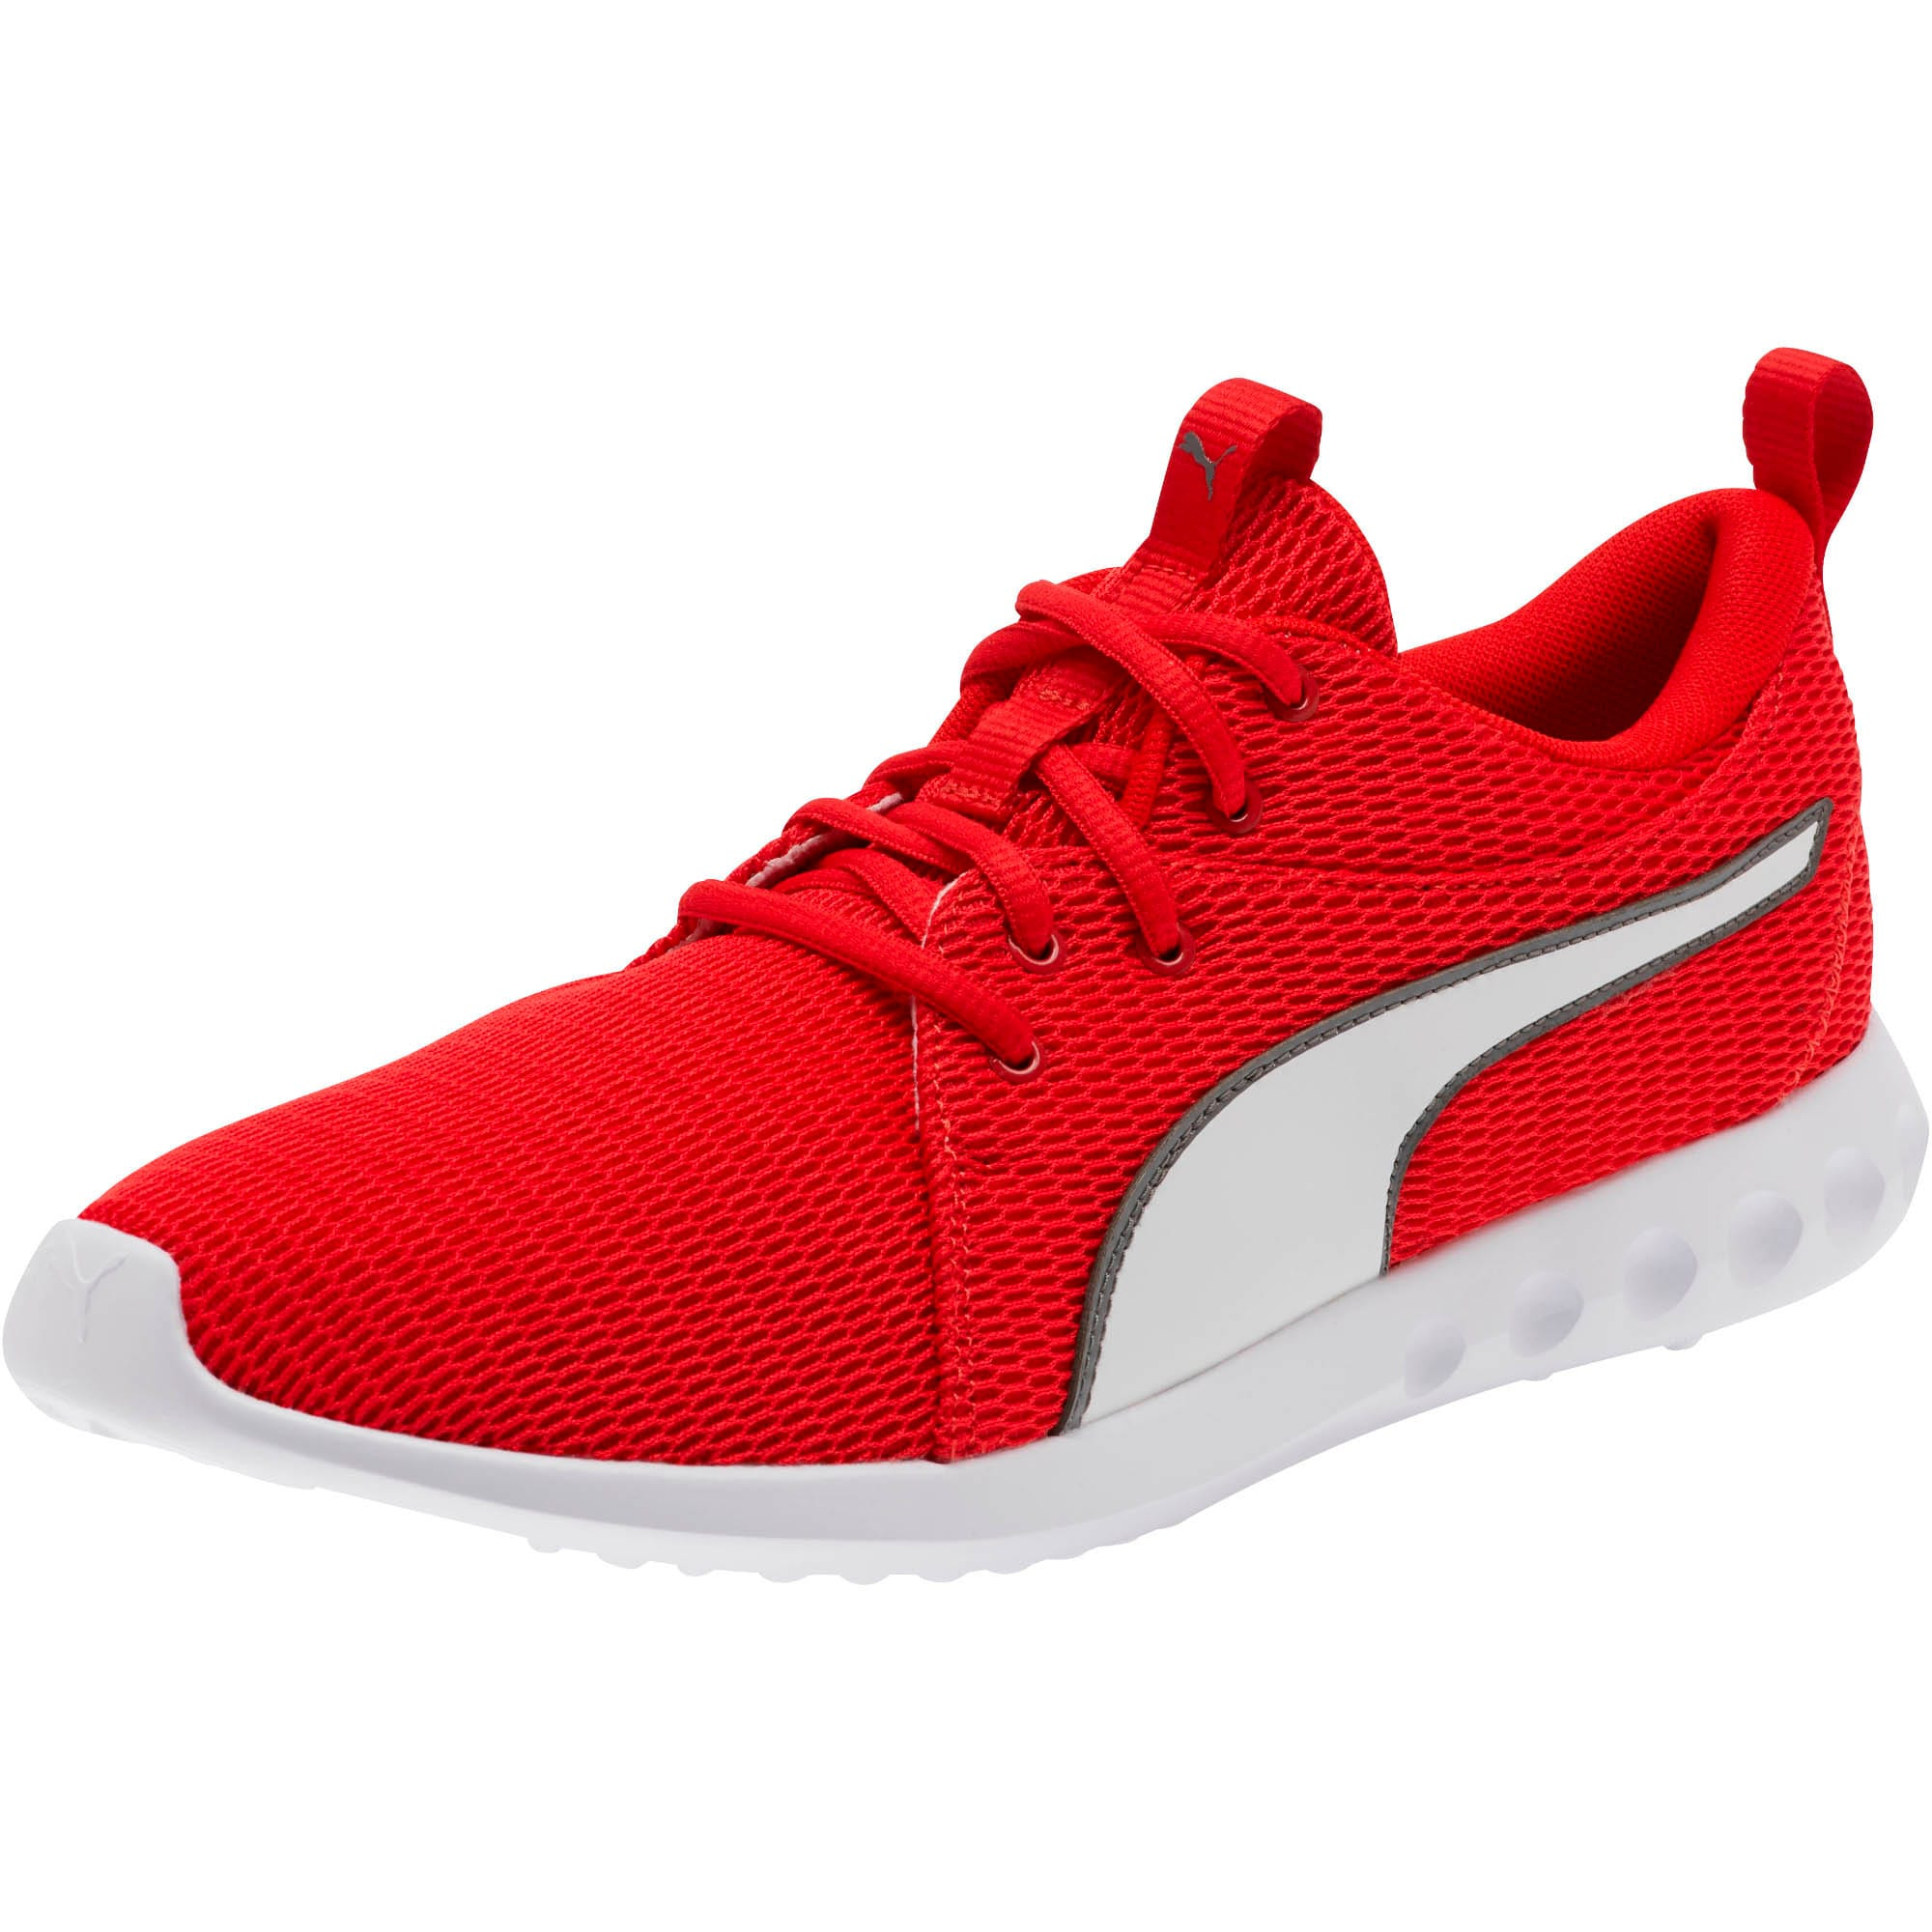 Thumbnail 1 of Carson 2 New Core FS Sneakers, High Risk Red-Charcoal Gray, medium